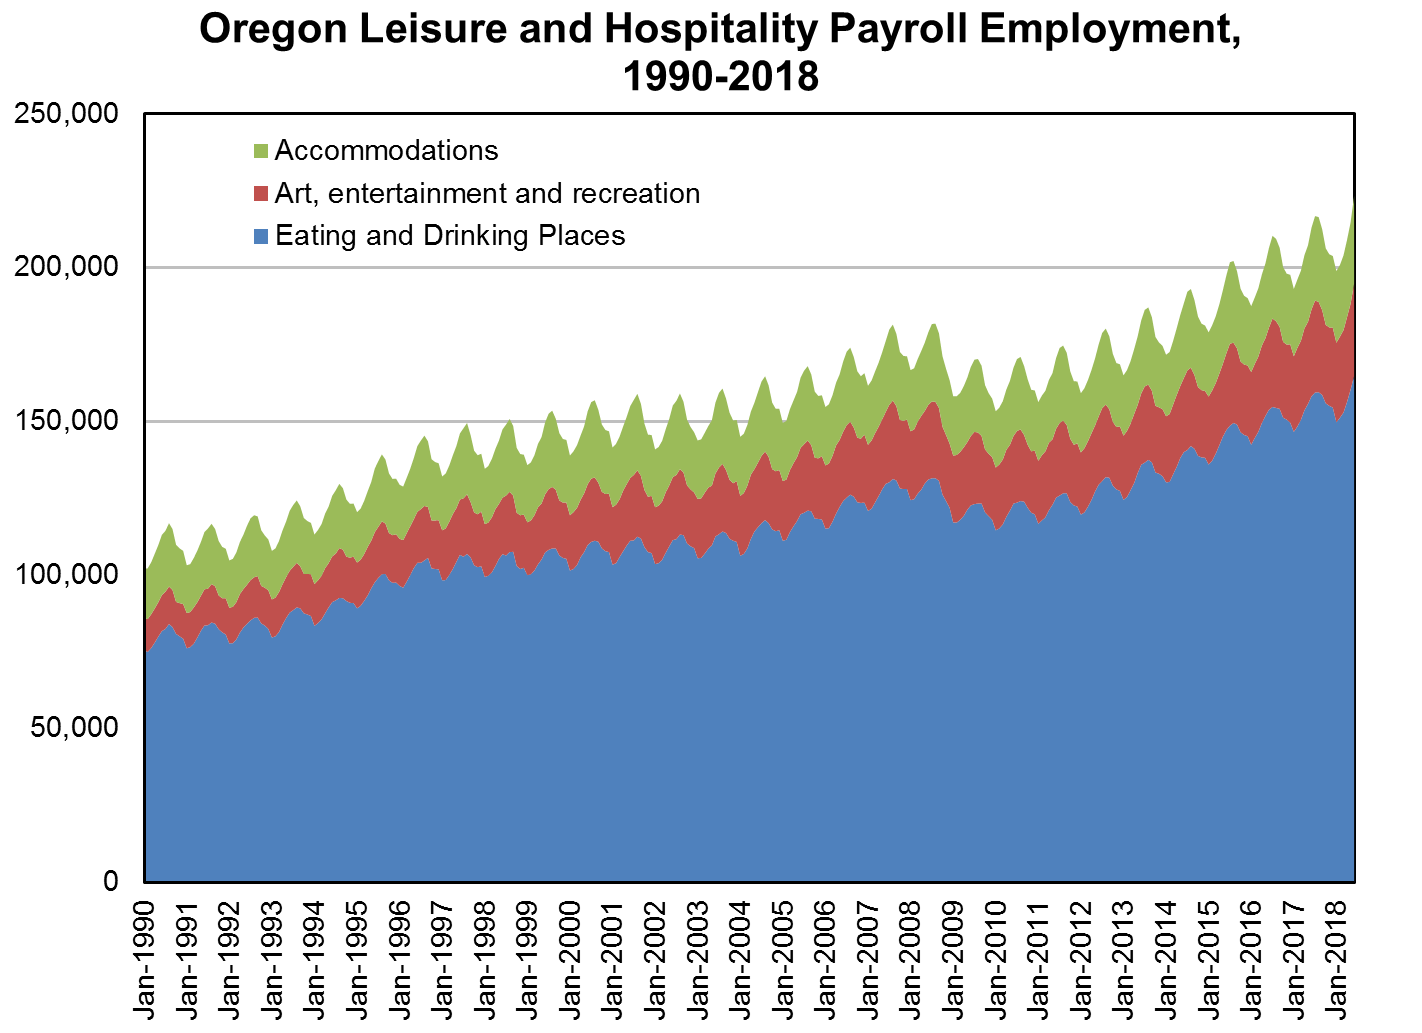 Leisure and hospitality jobs growth in Oregon